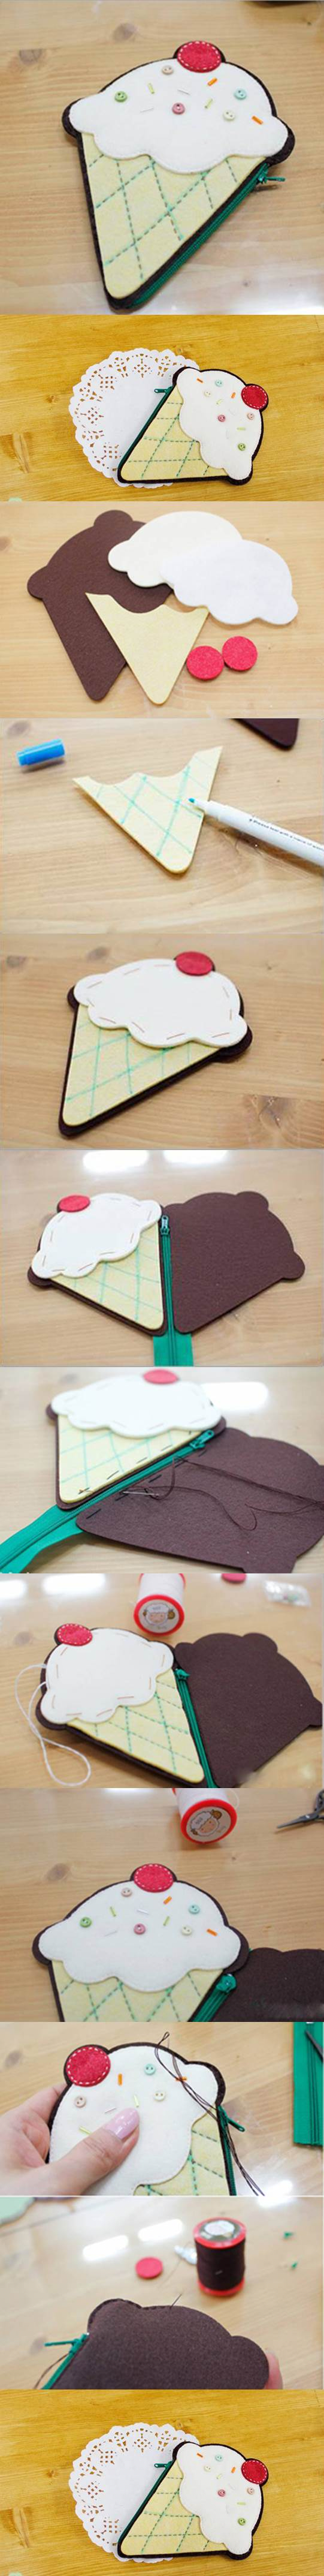 DIY Ice Cream Shaped Coin Purse 2